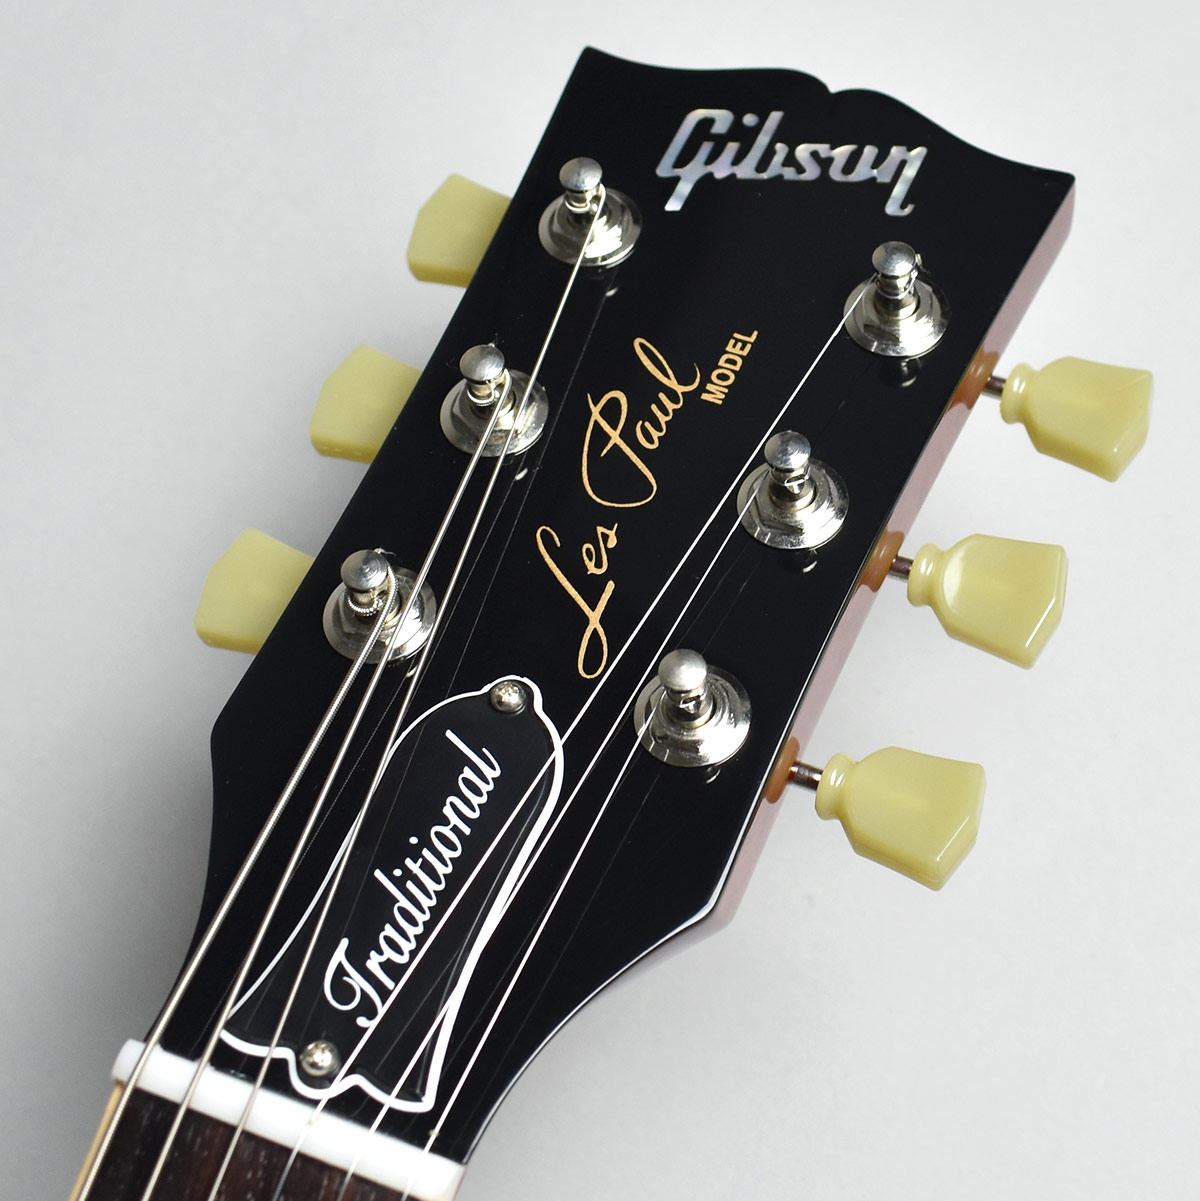 Les Paul Traditional Plus Quilt 2017 Limitedのヘッド画像